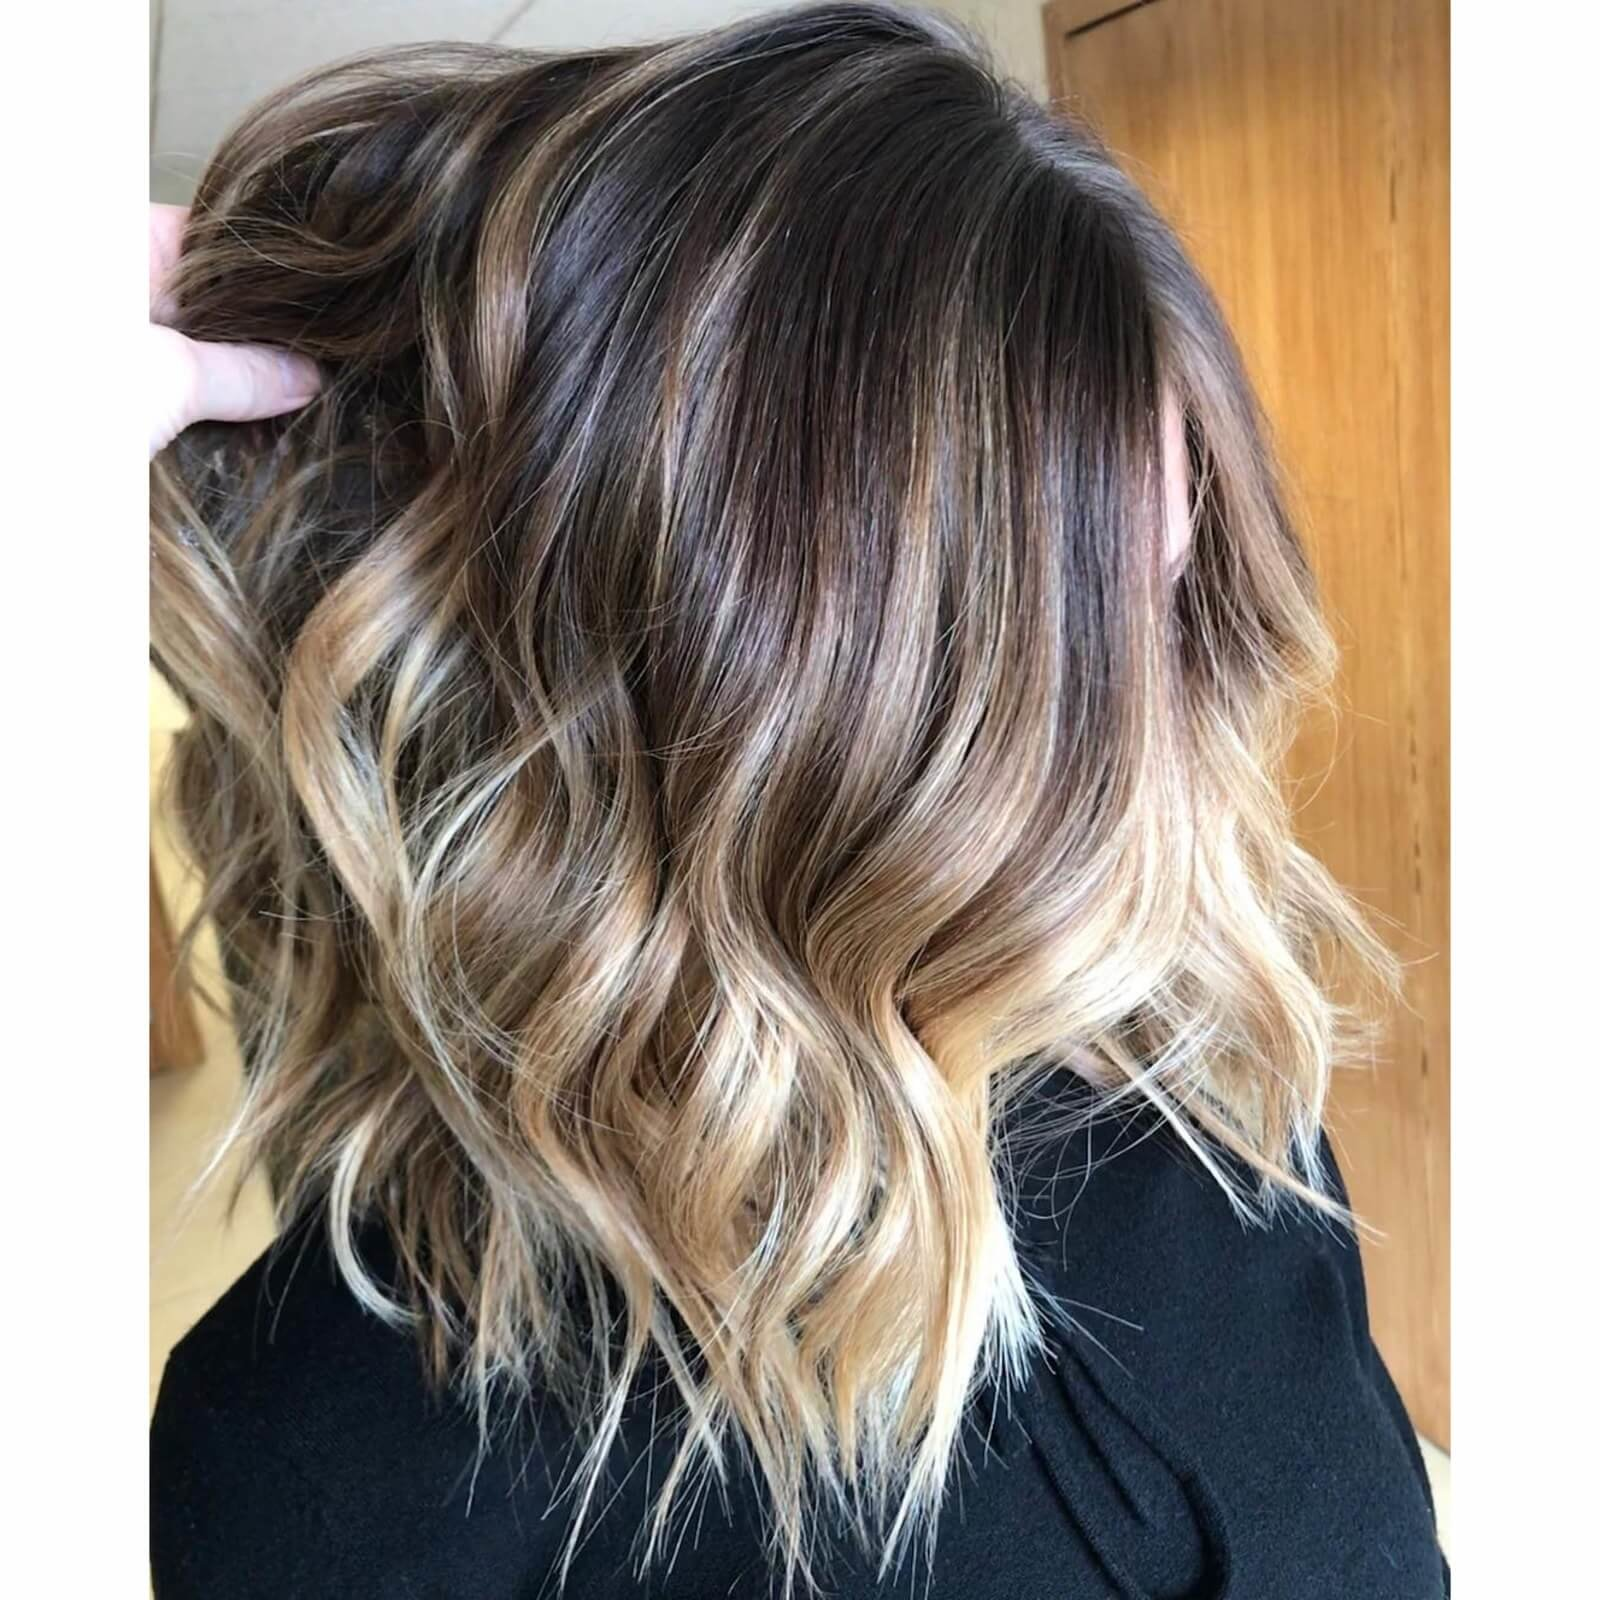 Free All You Need To Know About The 2019 Hair Color Trends Wallpaper